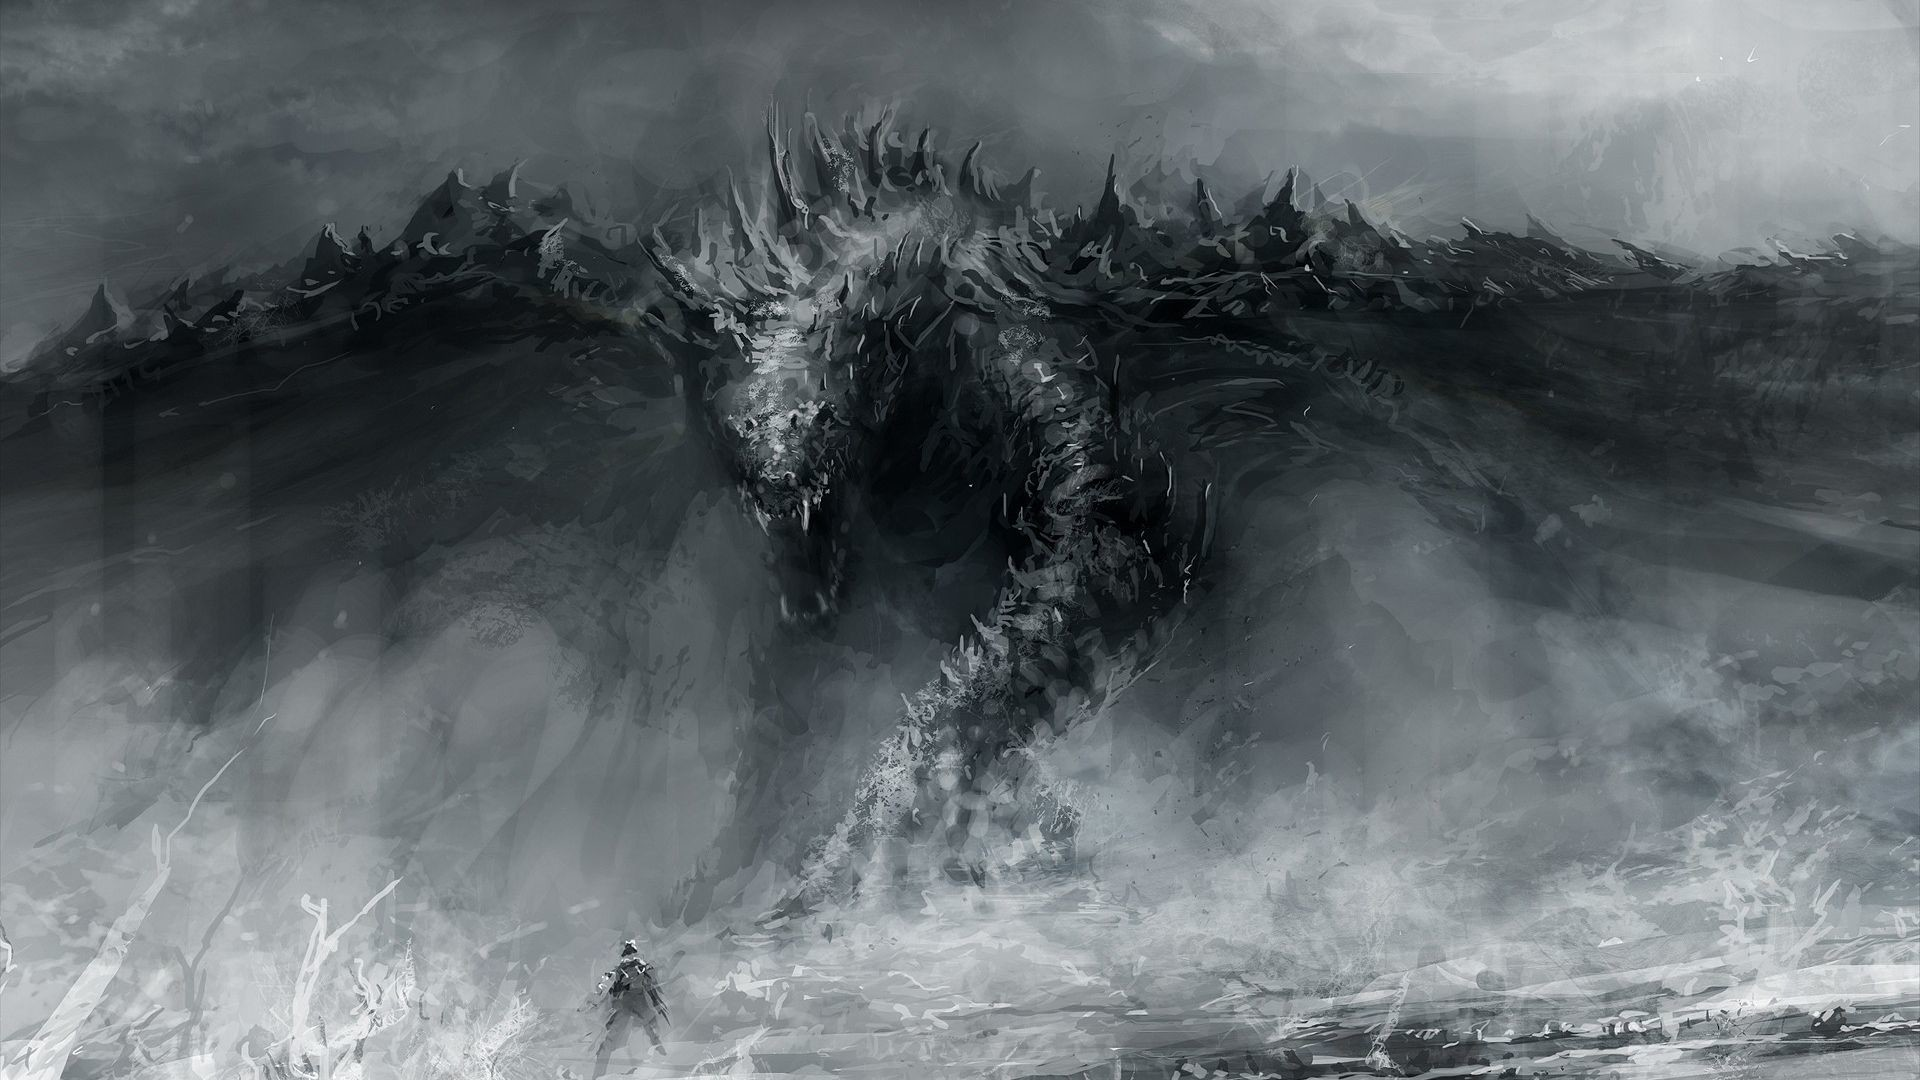 1920x1080 Grayscale Monsters Fantasy Art HD Wallpaper. « »